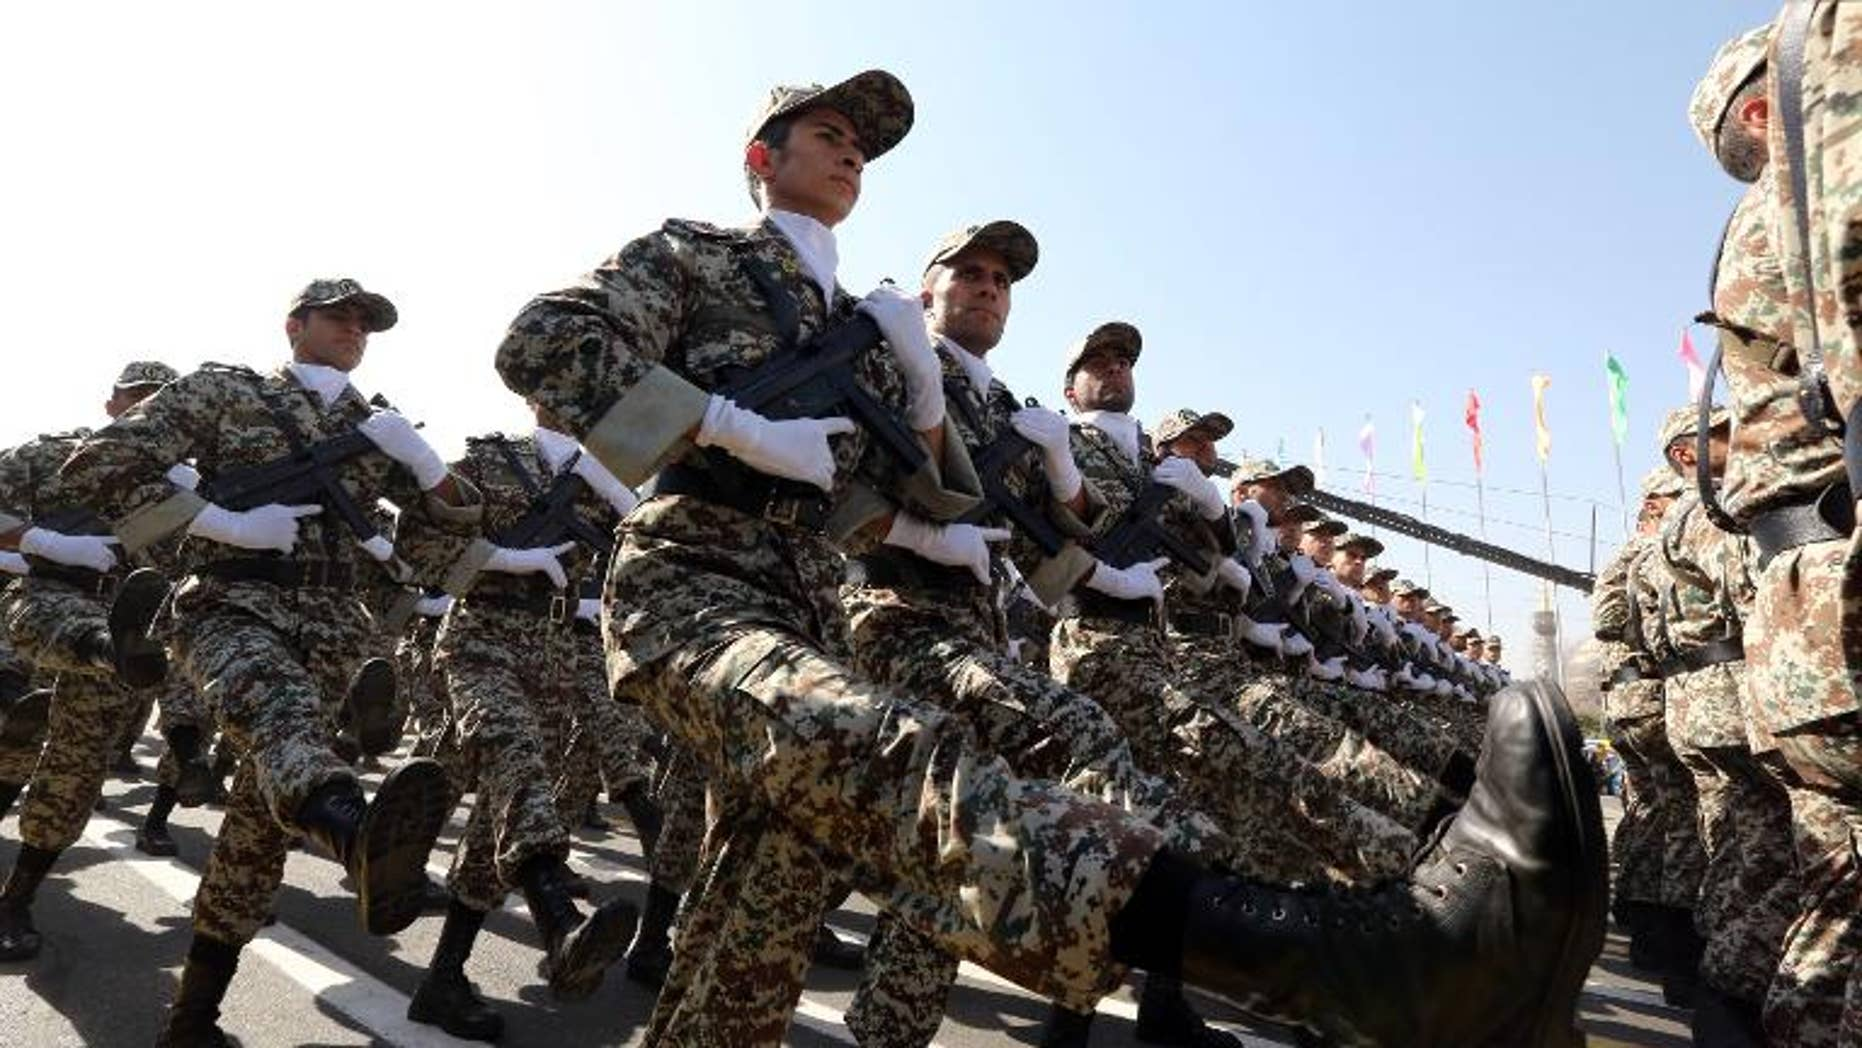 Iranian soldiers march past President Hassan Rowhani during an annual military parade in Tehran, on September 22, 2013